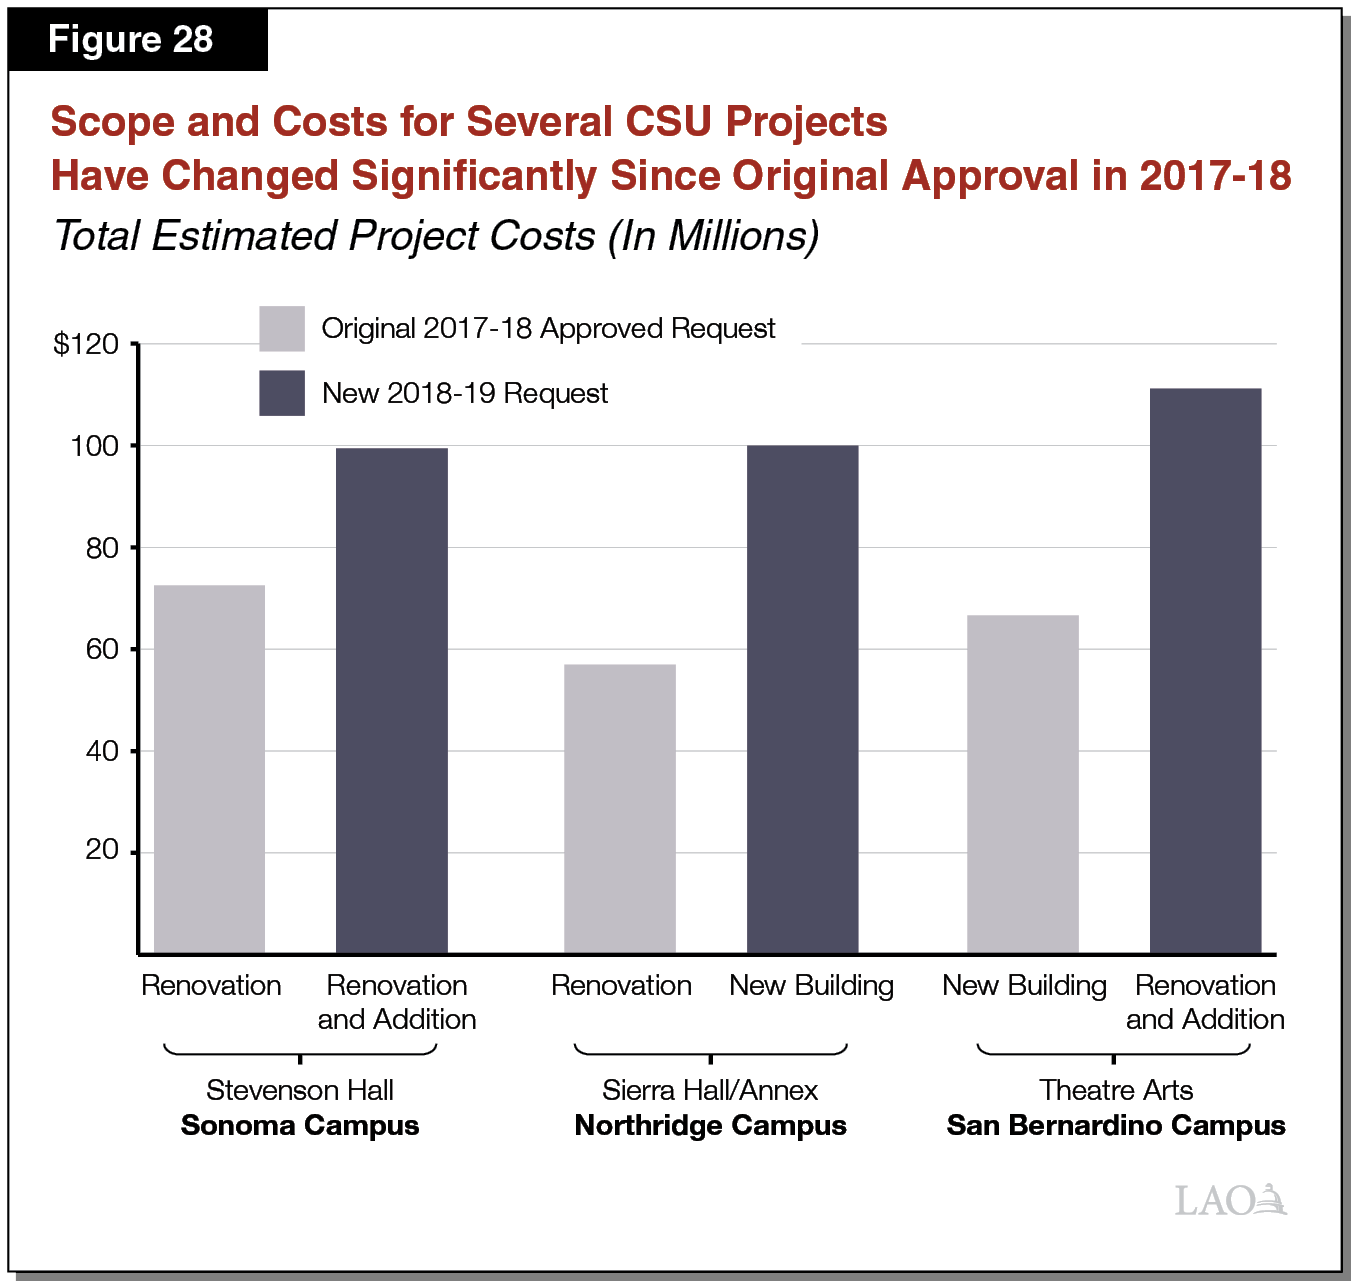 Figure 28 - Scope and Costs for Several CSU Projects Have Changed Significantly Since Initial Approval in 2017-18